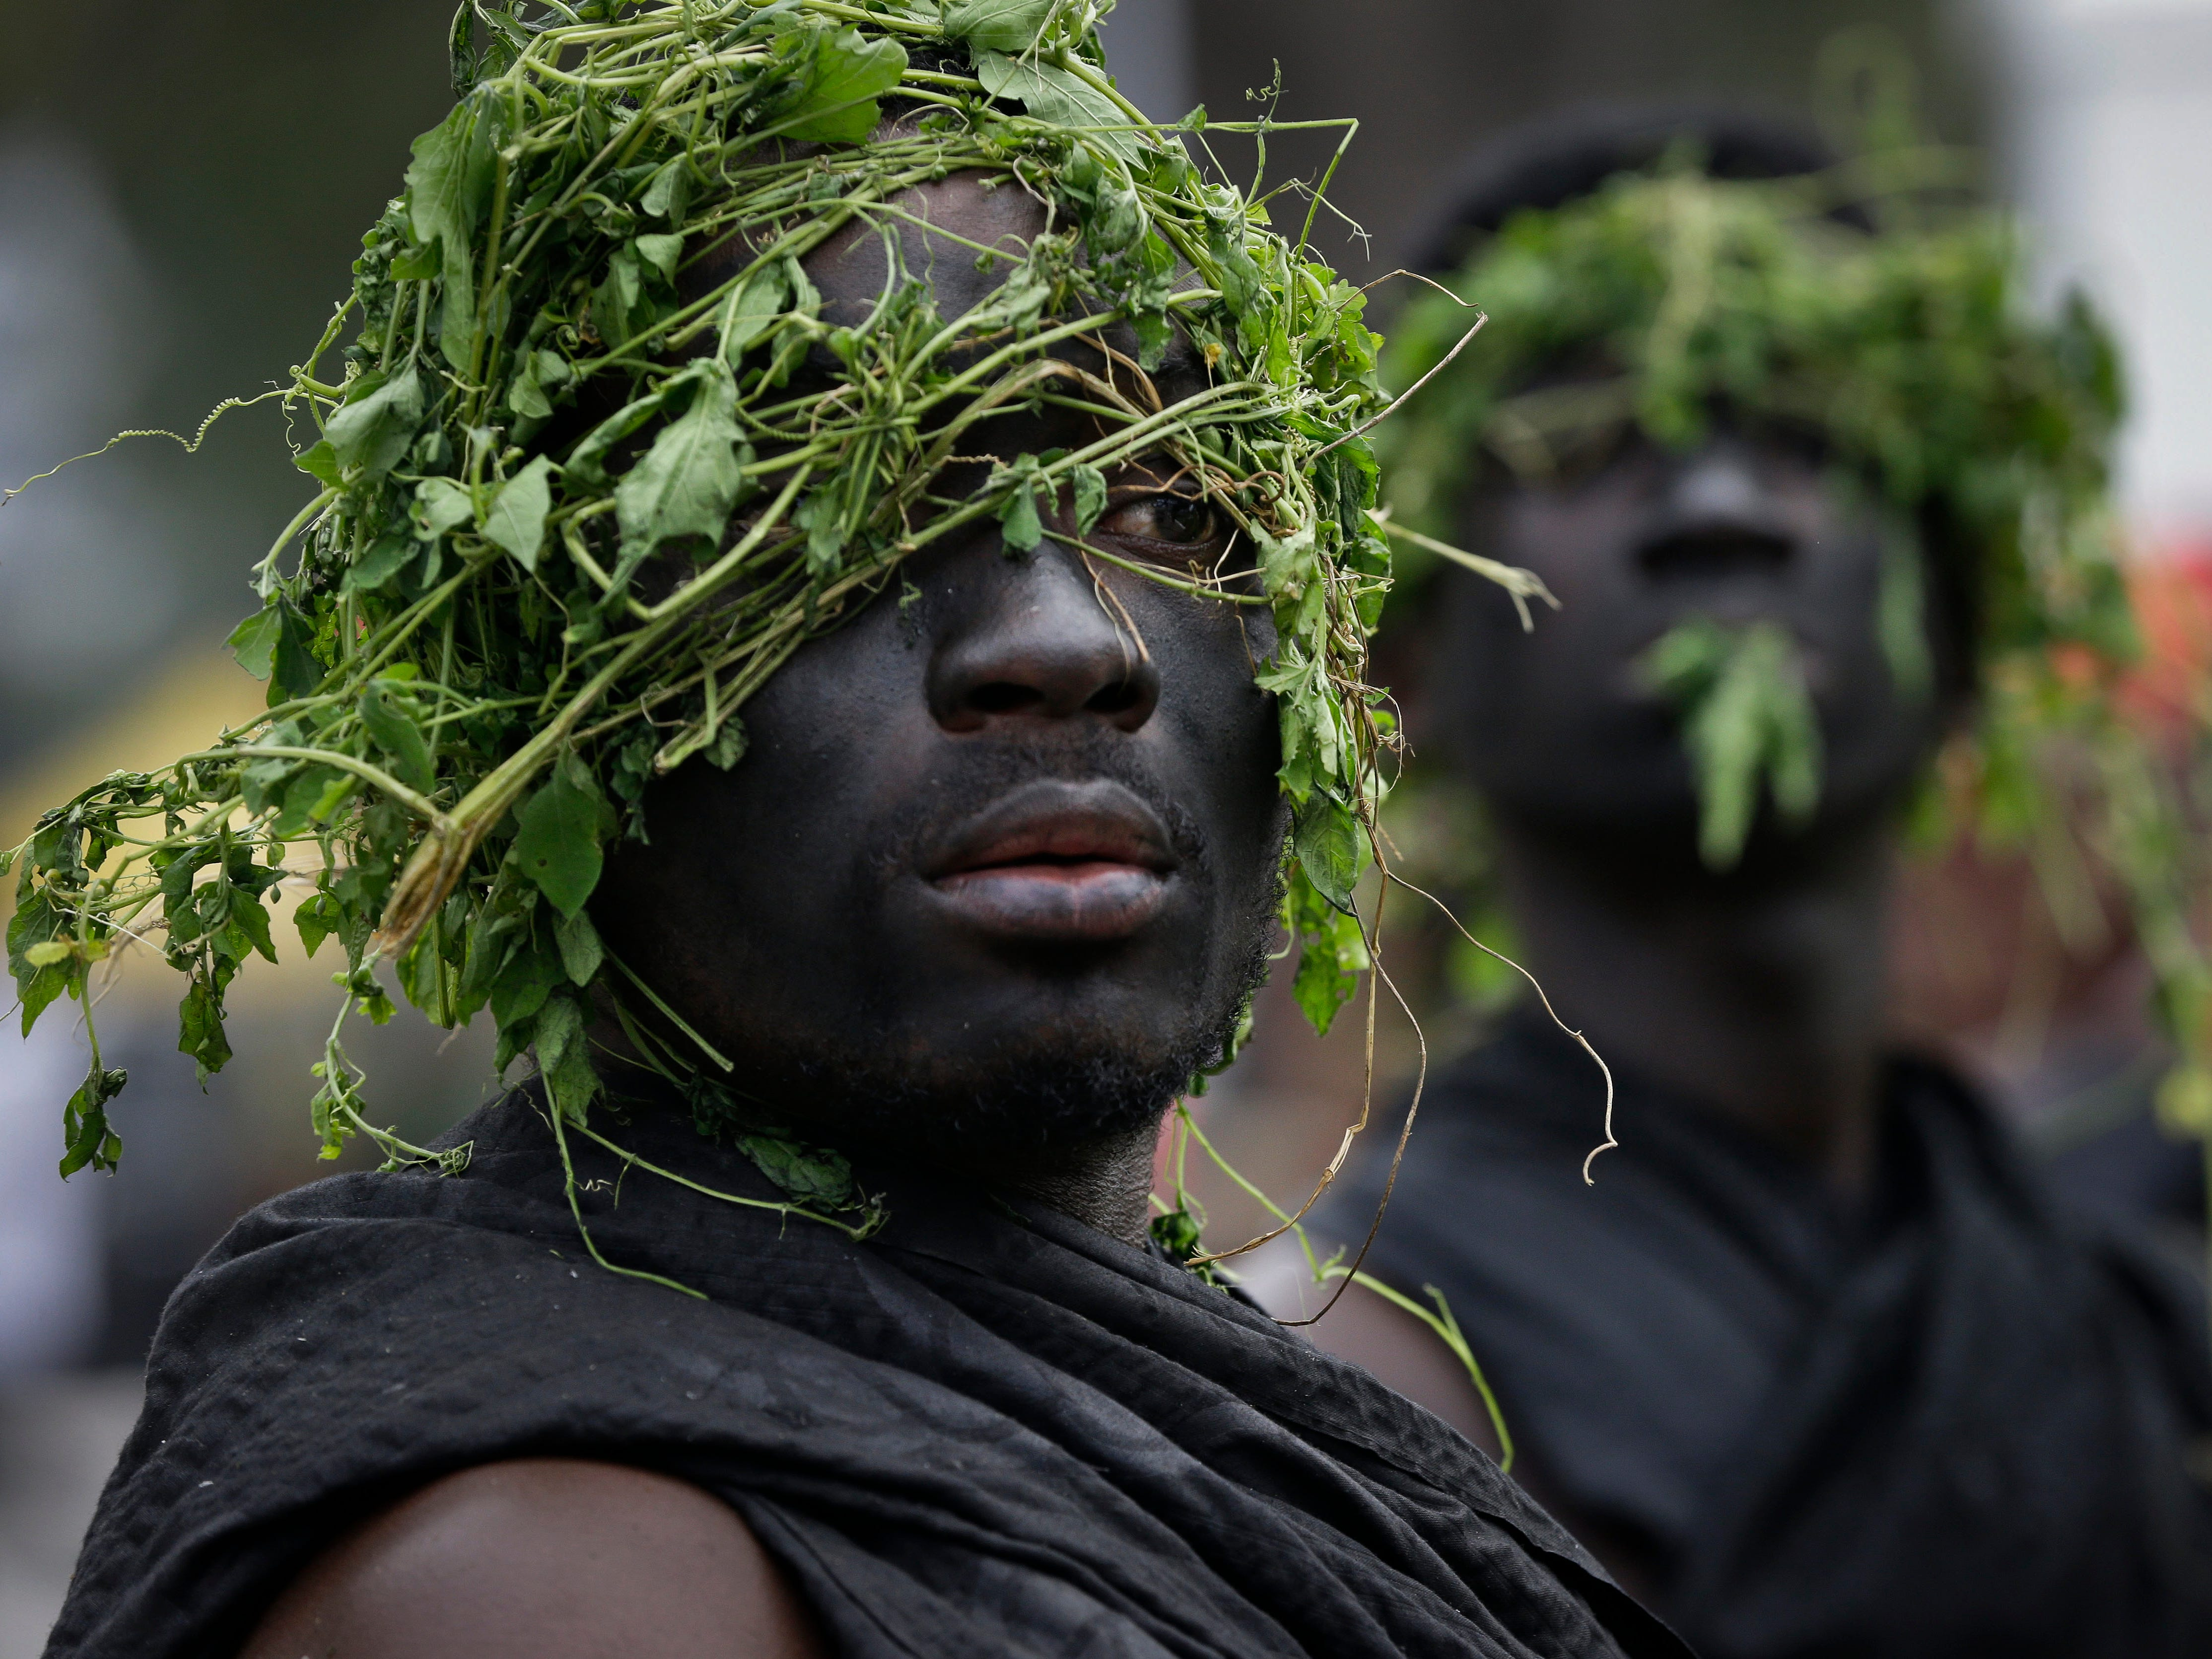 Guards of a Ghanaian chief wear black and plants on their heads, a tradition when going to a funeral, and queue outside to pay their respects as the coffin of former U.N. Secretary-General Kofi Annan lies in state at the Accra International Conference Center in Ghana Wednesday, Sept. 12, 2018. Ghanaians are paying their respects to Annan, who died in August in Switzerland at age 80, ahead of Thursday's state funeral.